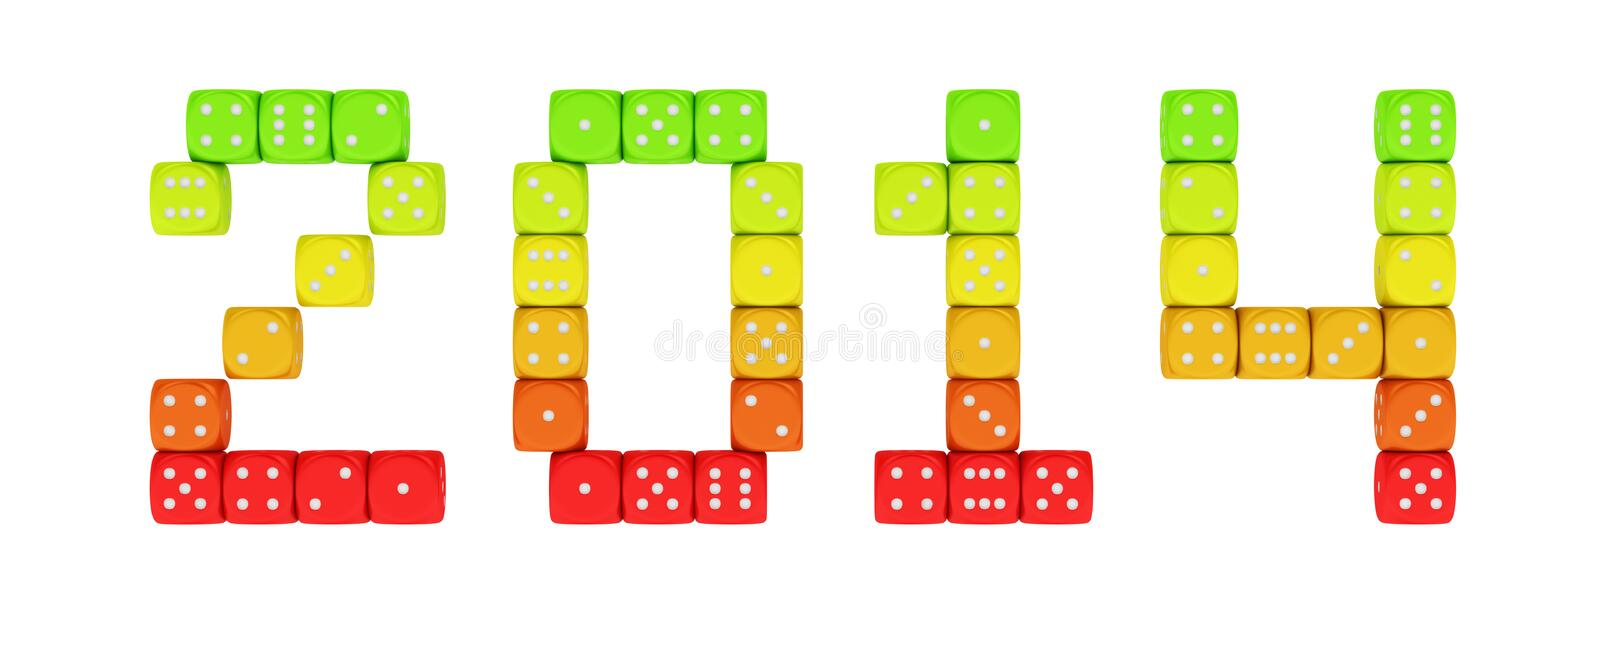 Download Dice energy 2014 stock illustration. Image of luck, holiday - 30004681